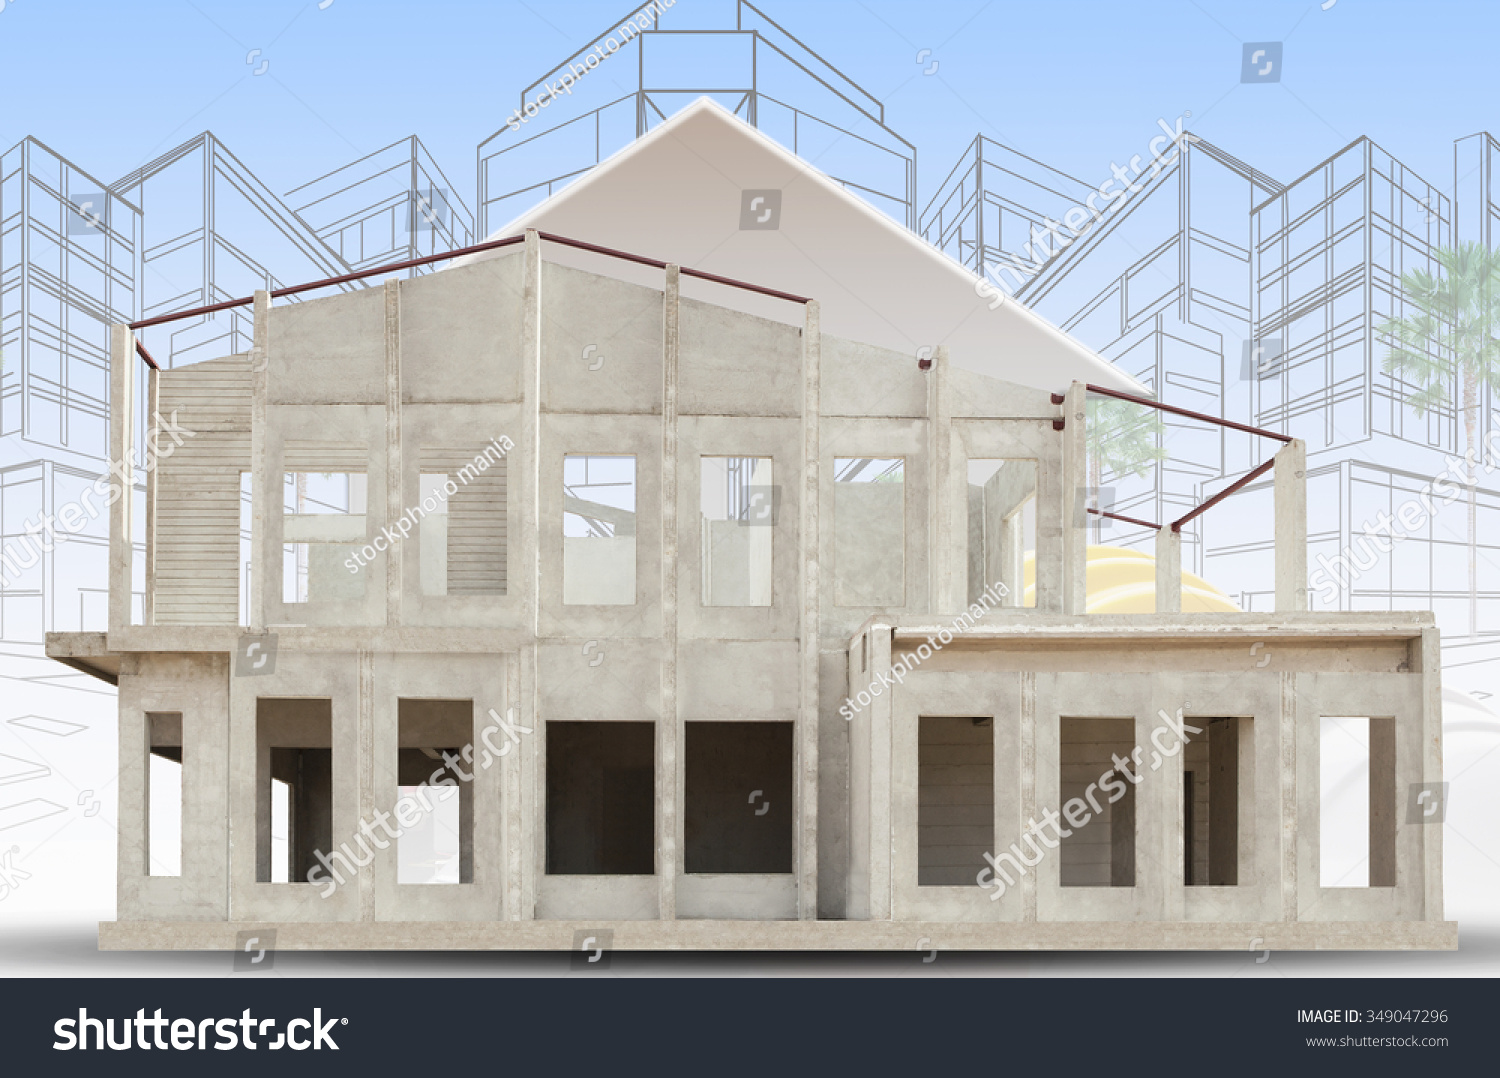 Frame of knock down house and two point perspective sketch of modern building